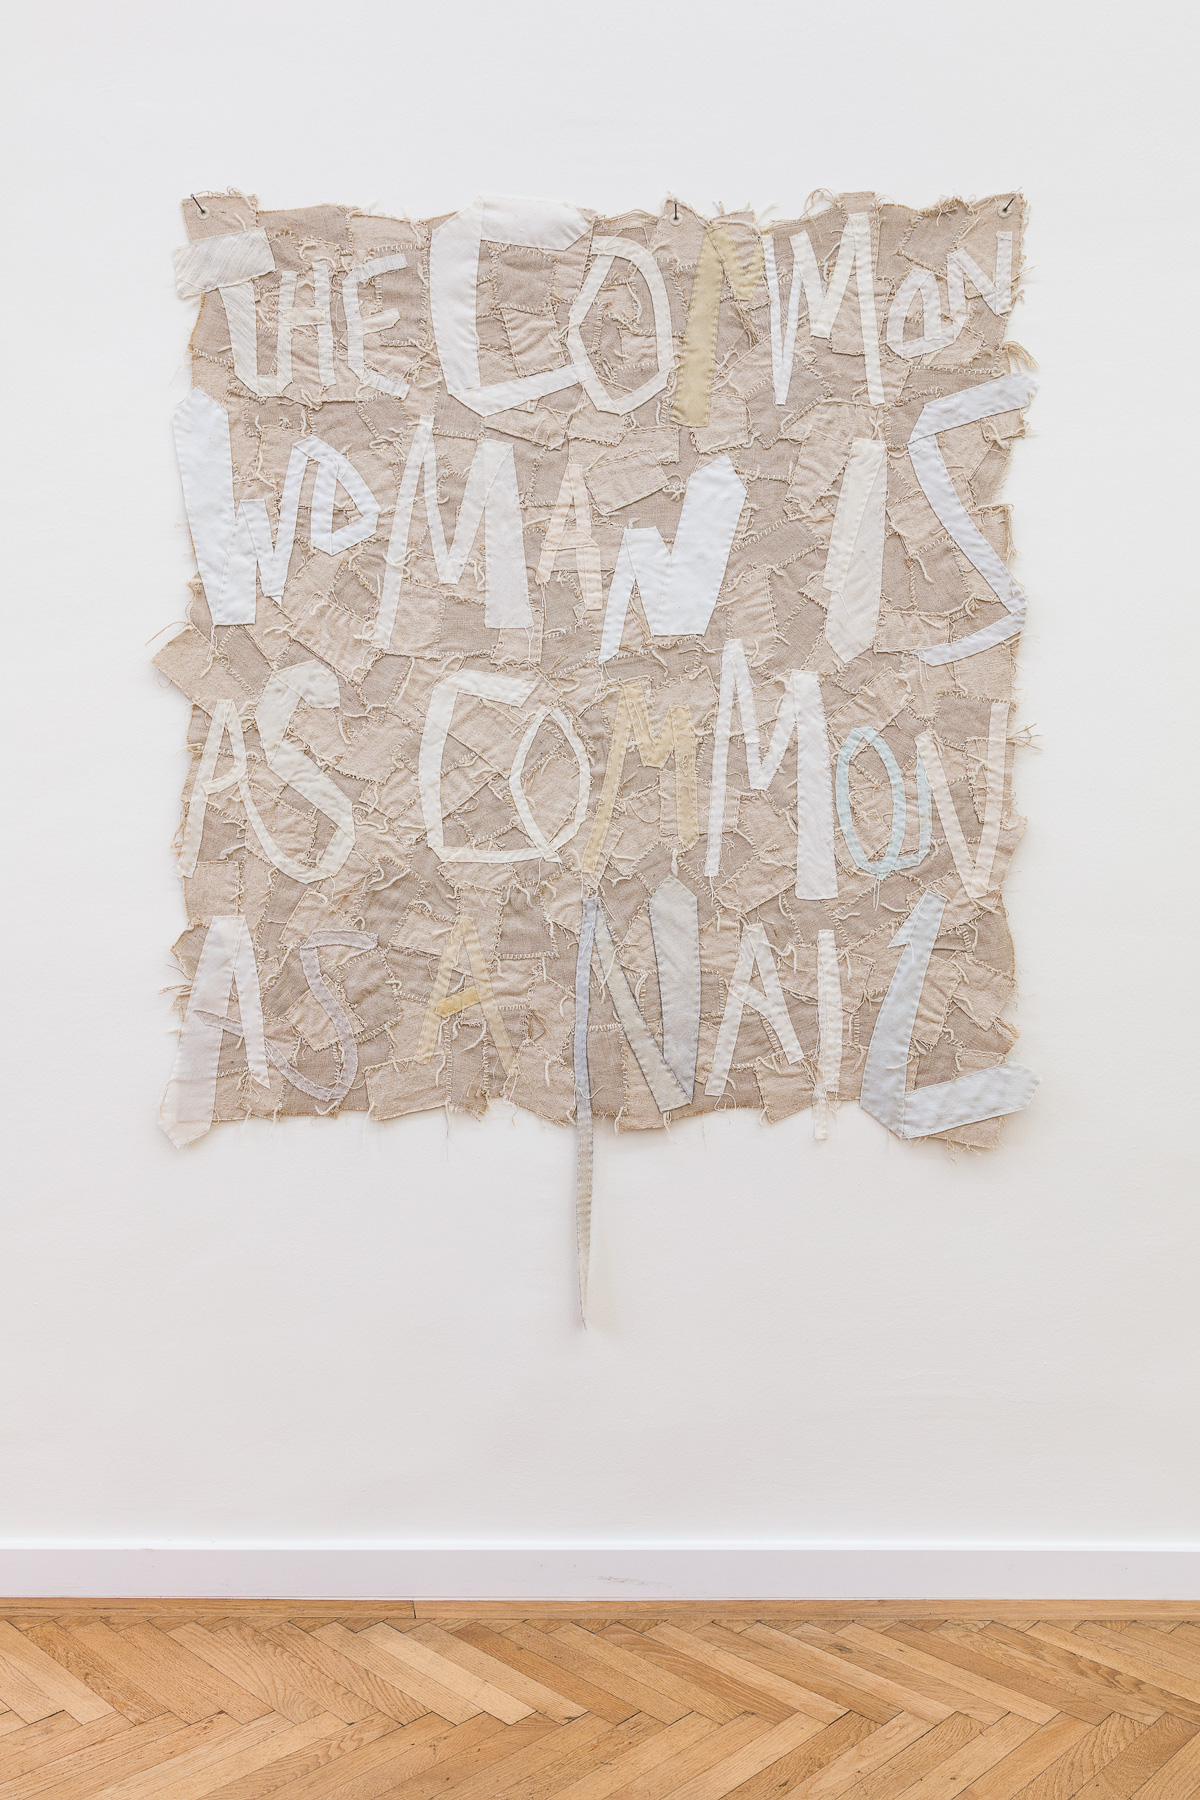 common crazy I – V, 2019. Burlap, canvas, tie linings, yarn, grommets. Various sizes.